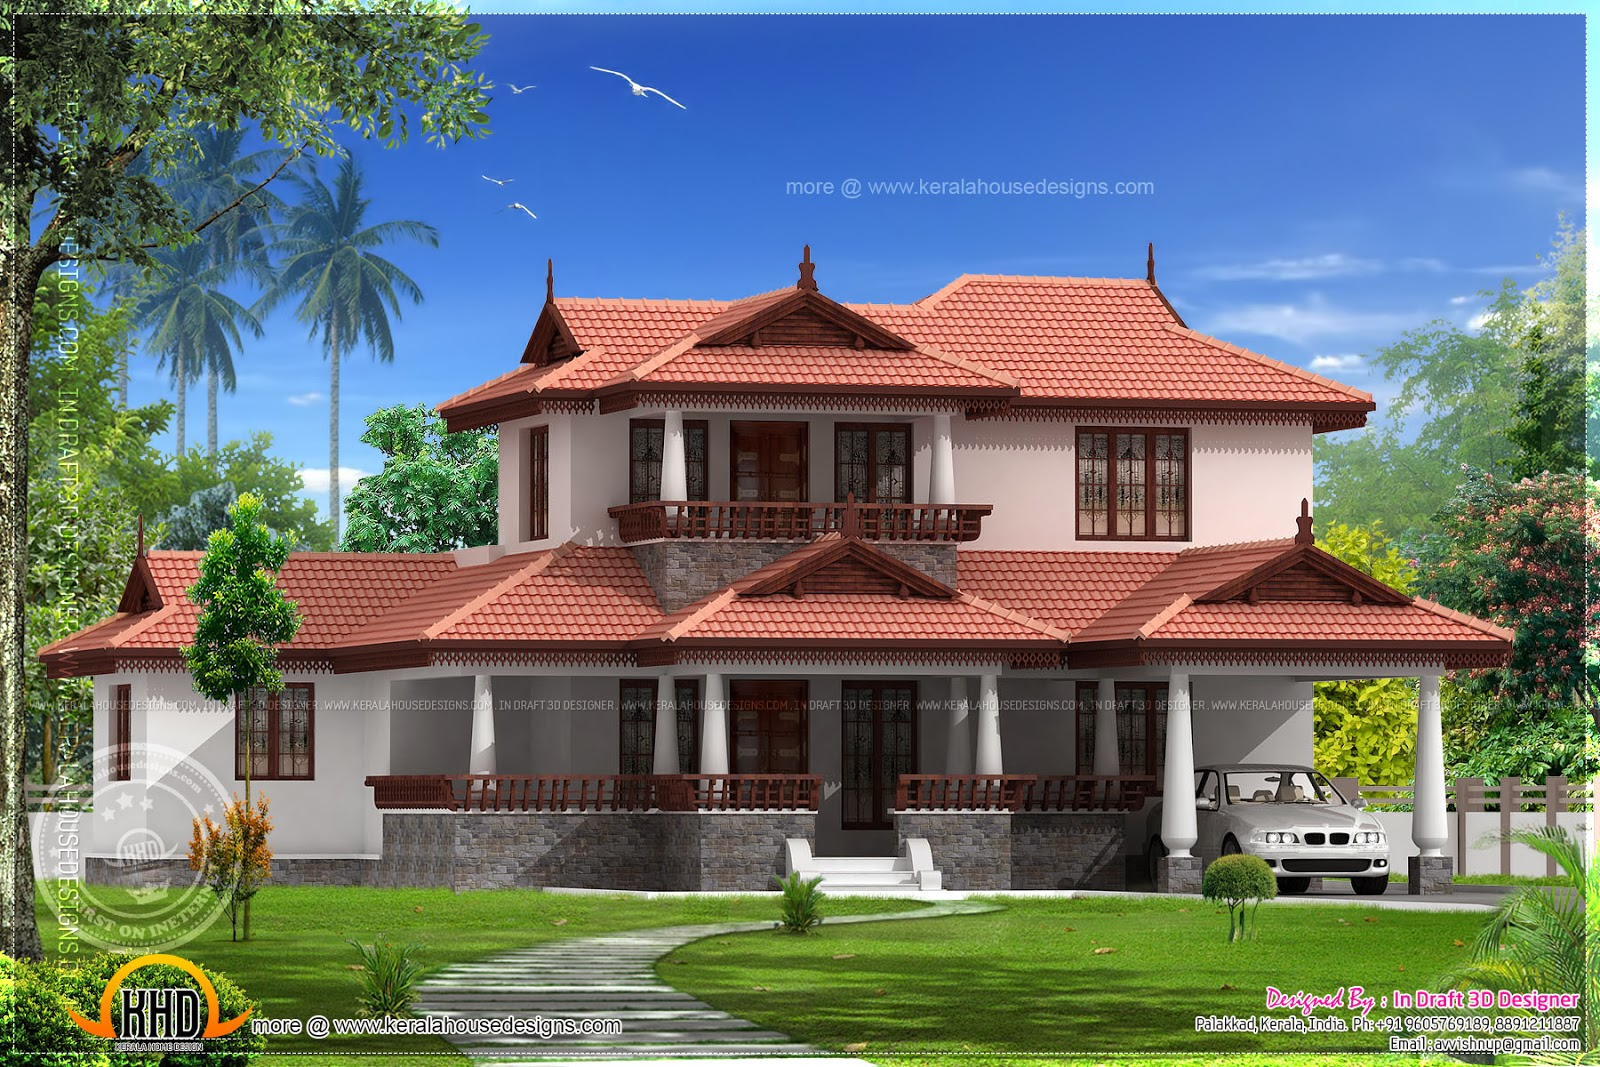 3 bedroom kerala model home elevation kerala home design On kerala house elevation models